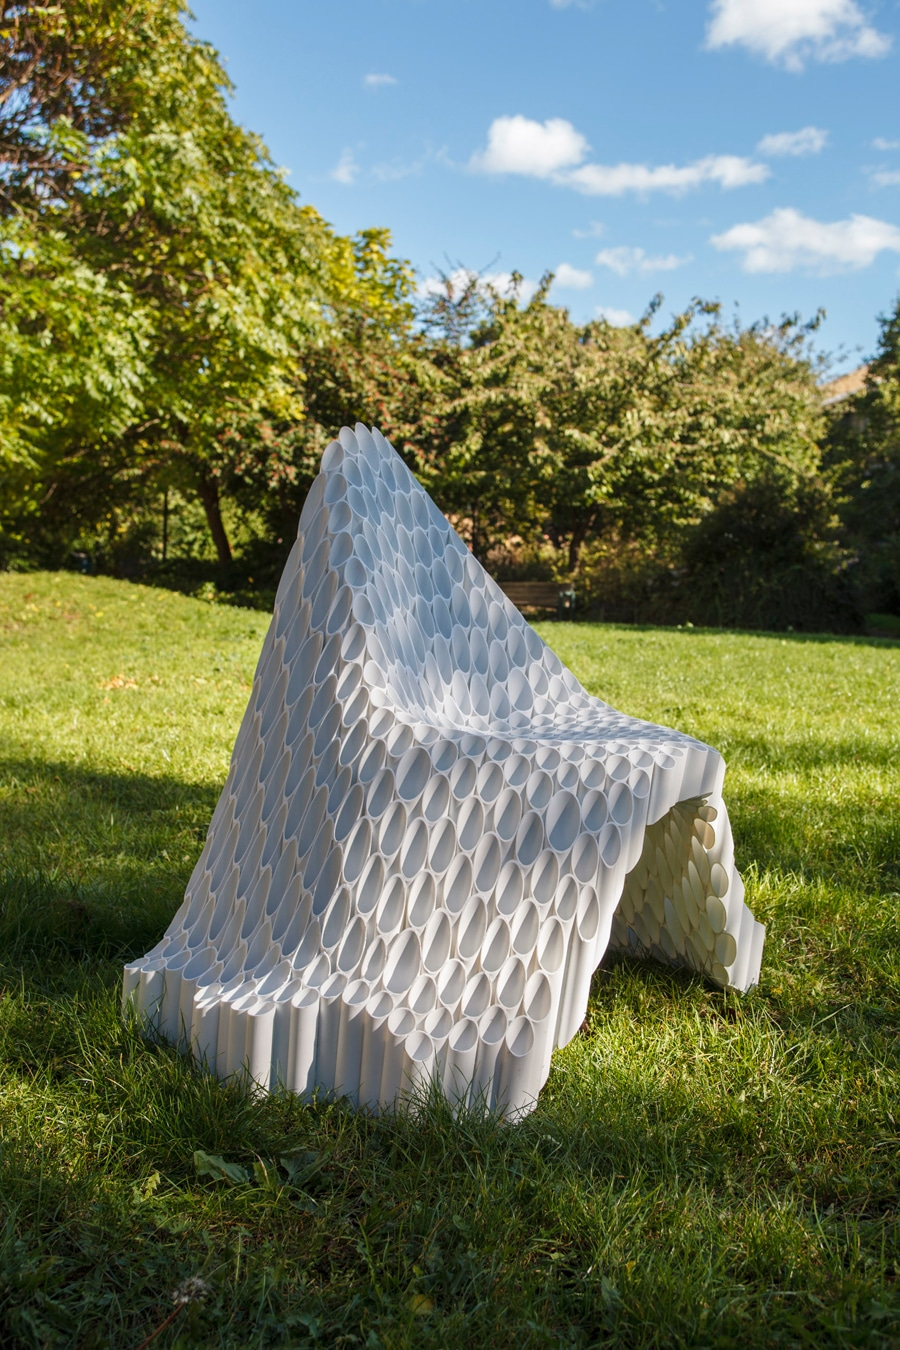 The Yard Sale Collective's Roccapina V chair and OSMA chair (pictured) are offered by Todd Merrill.